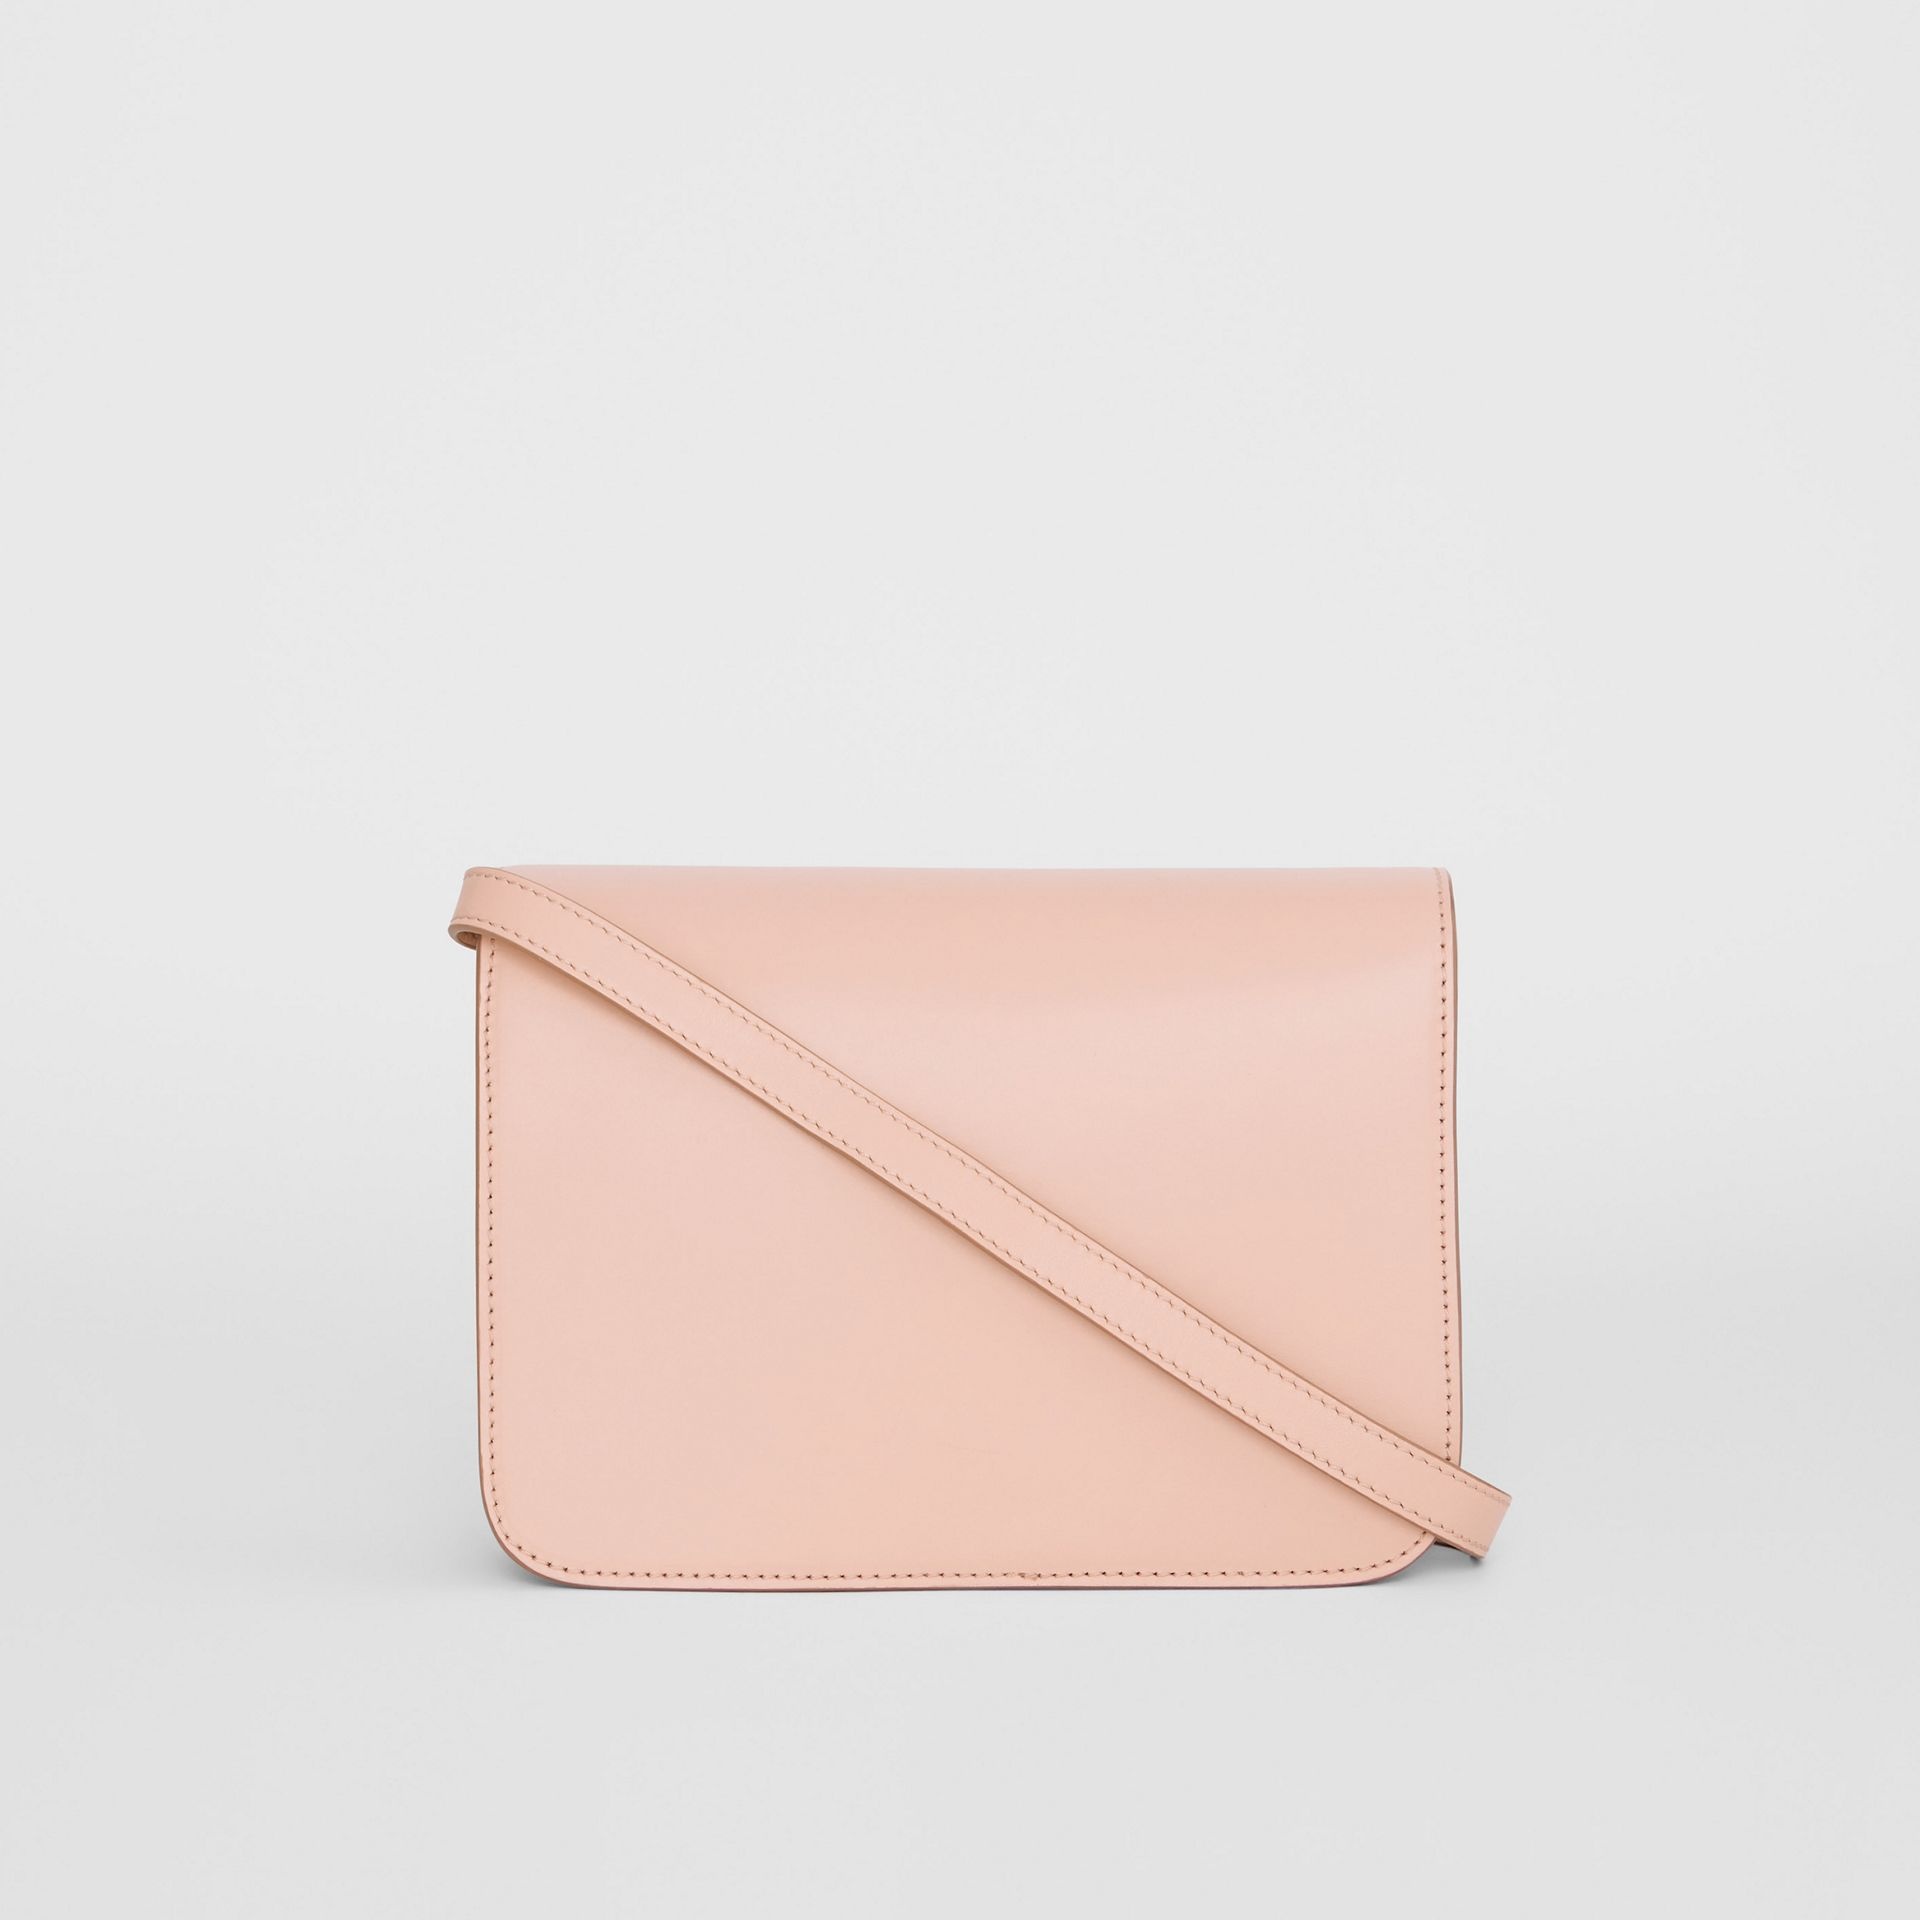 Small Leather TB Bag in Rose Beige - Women | Burberry - gallery image 7